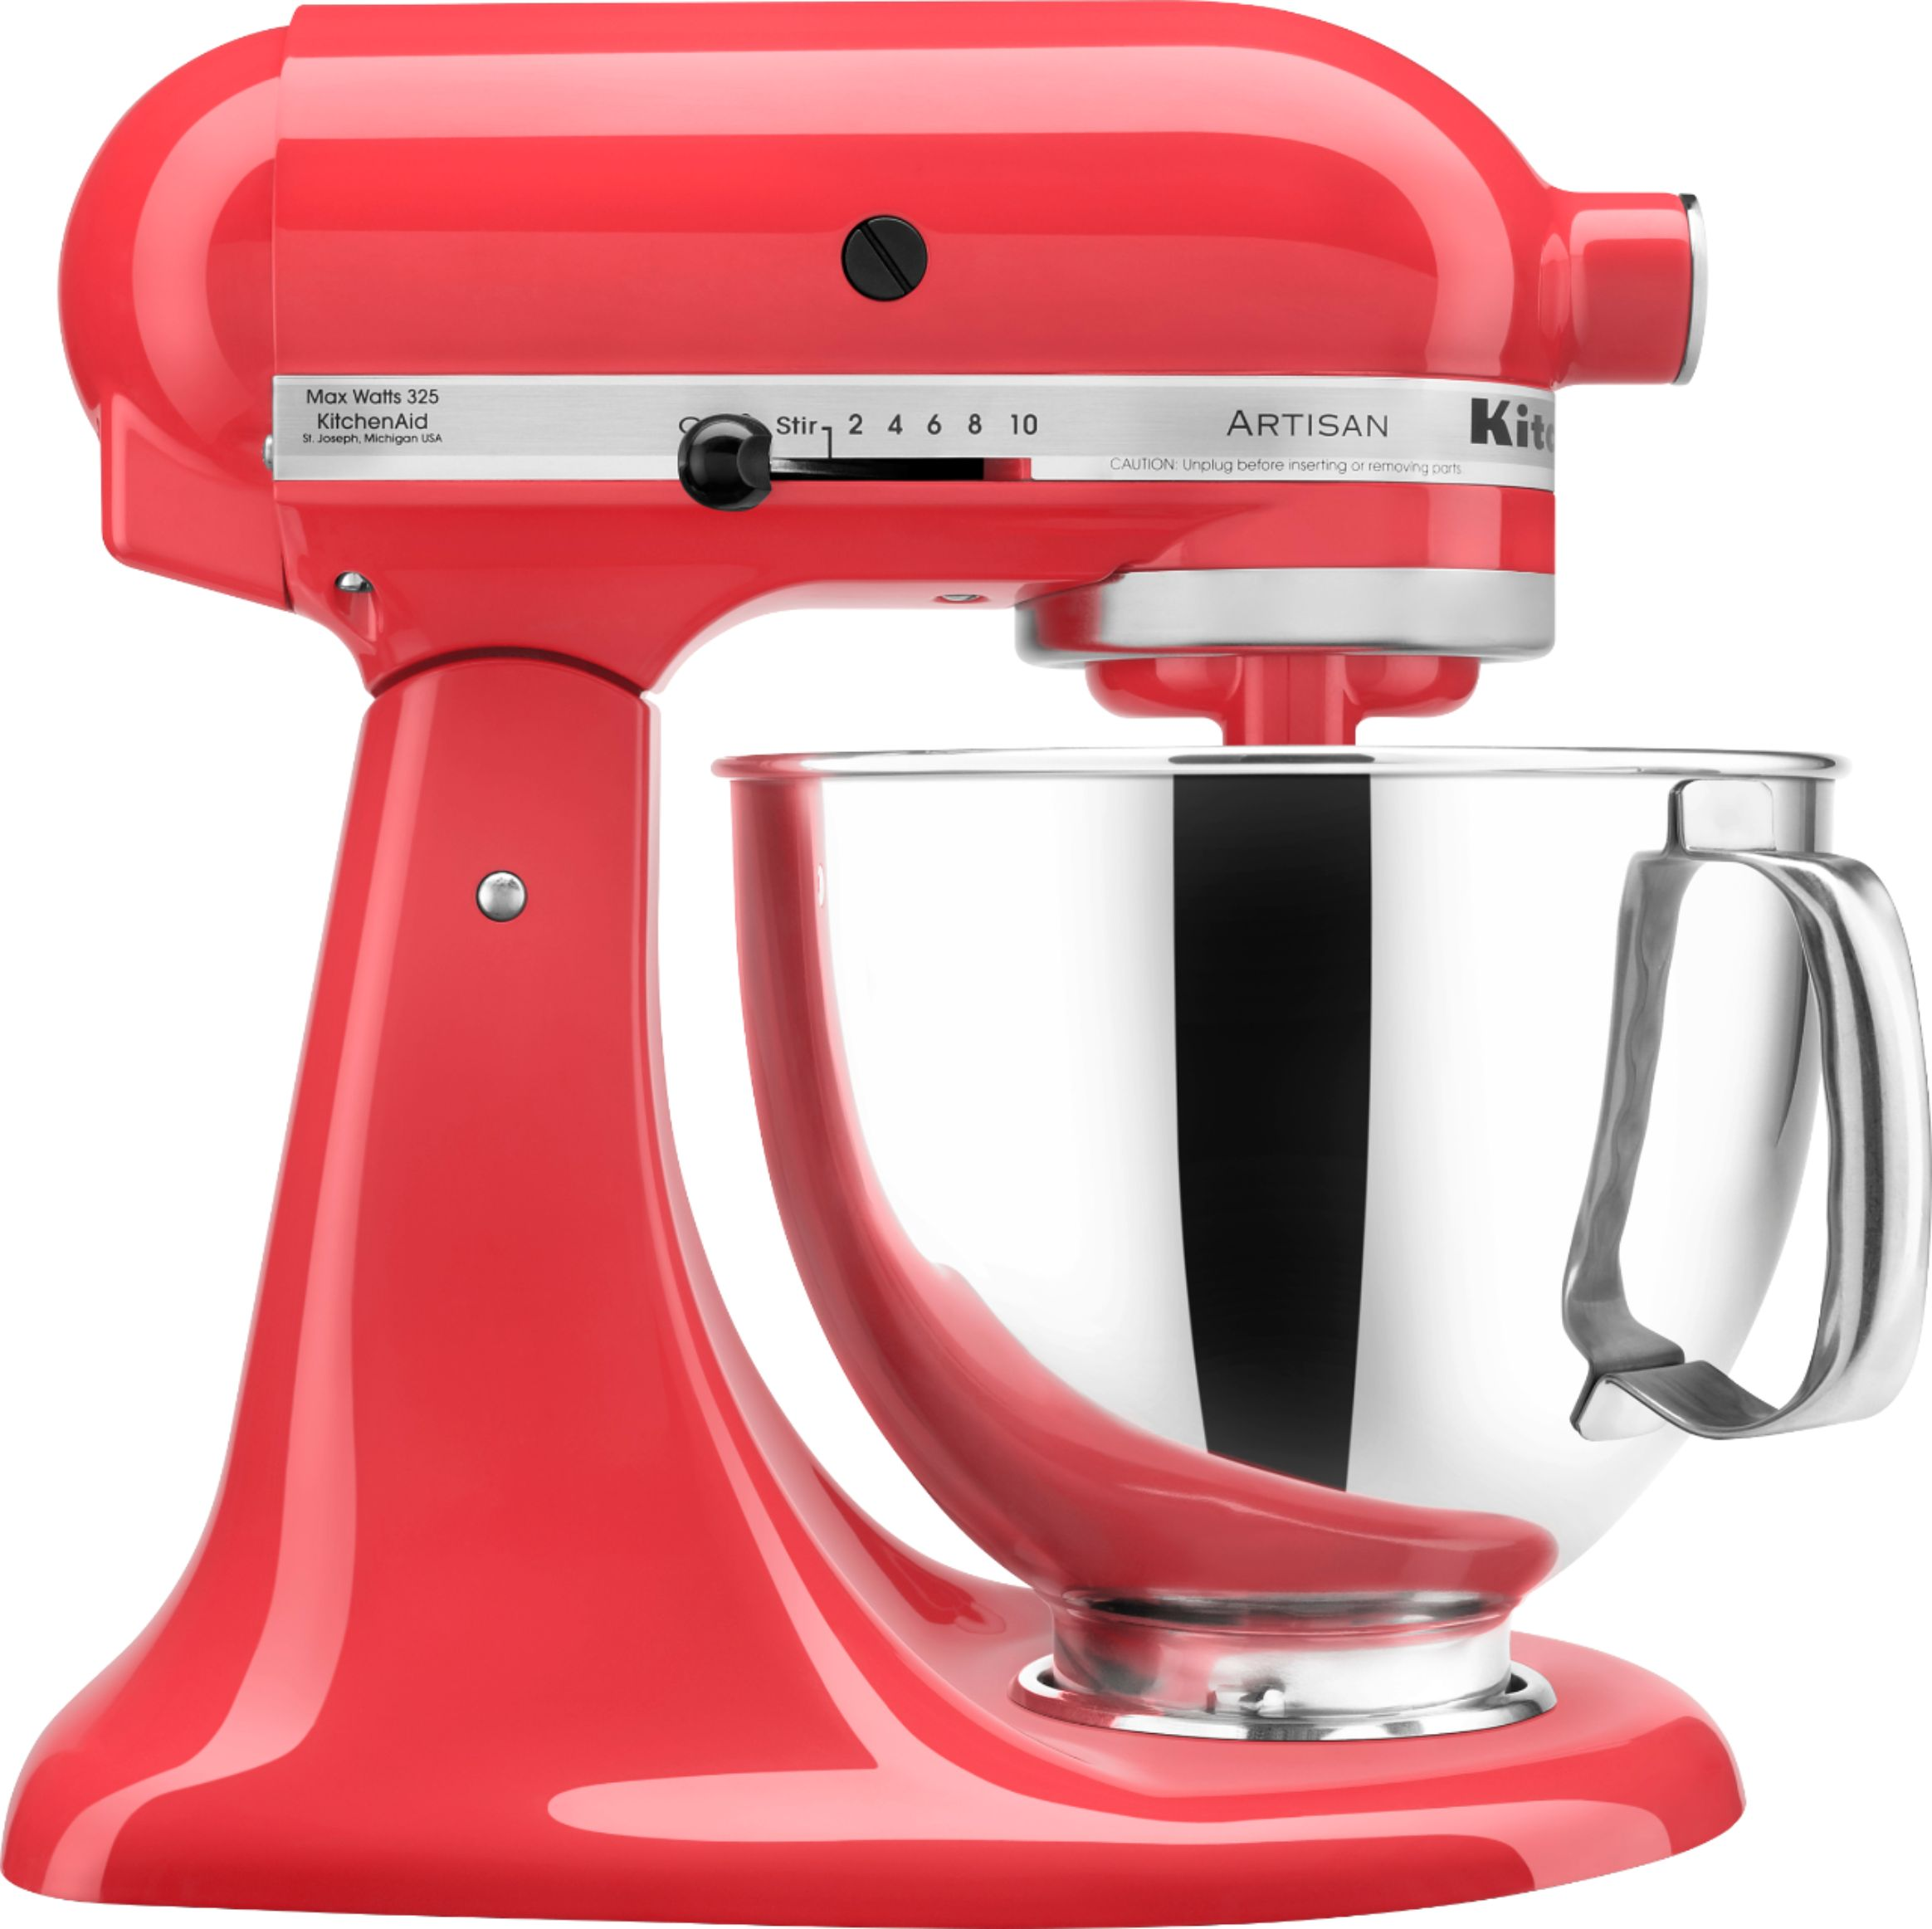 Küchenmaschine Bosch Vs Kitchenaid Kitchenaid Ksm150pswm Artisan Series Tilt Head Stand Mixer Watermelon